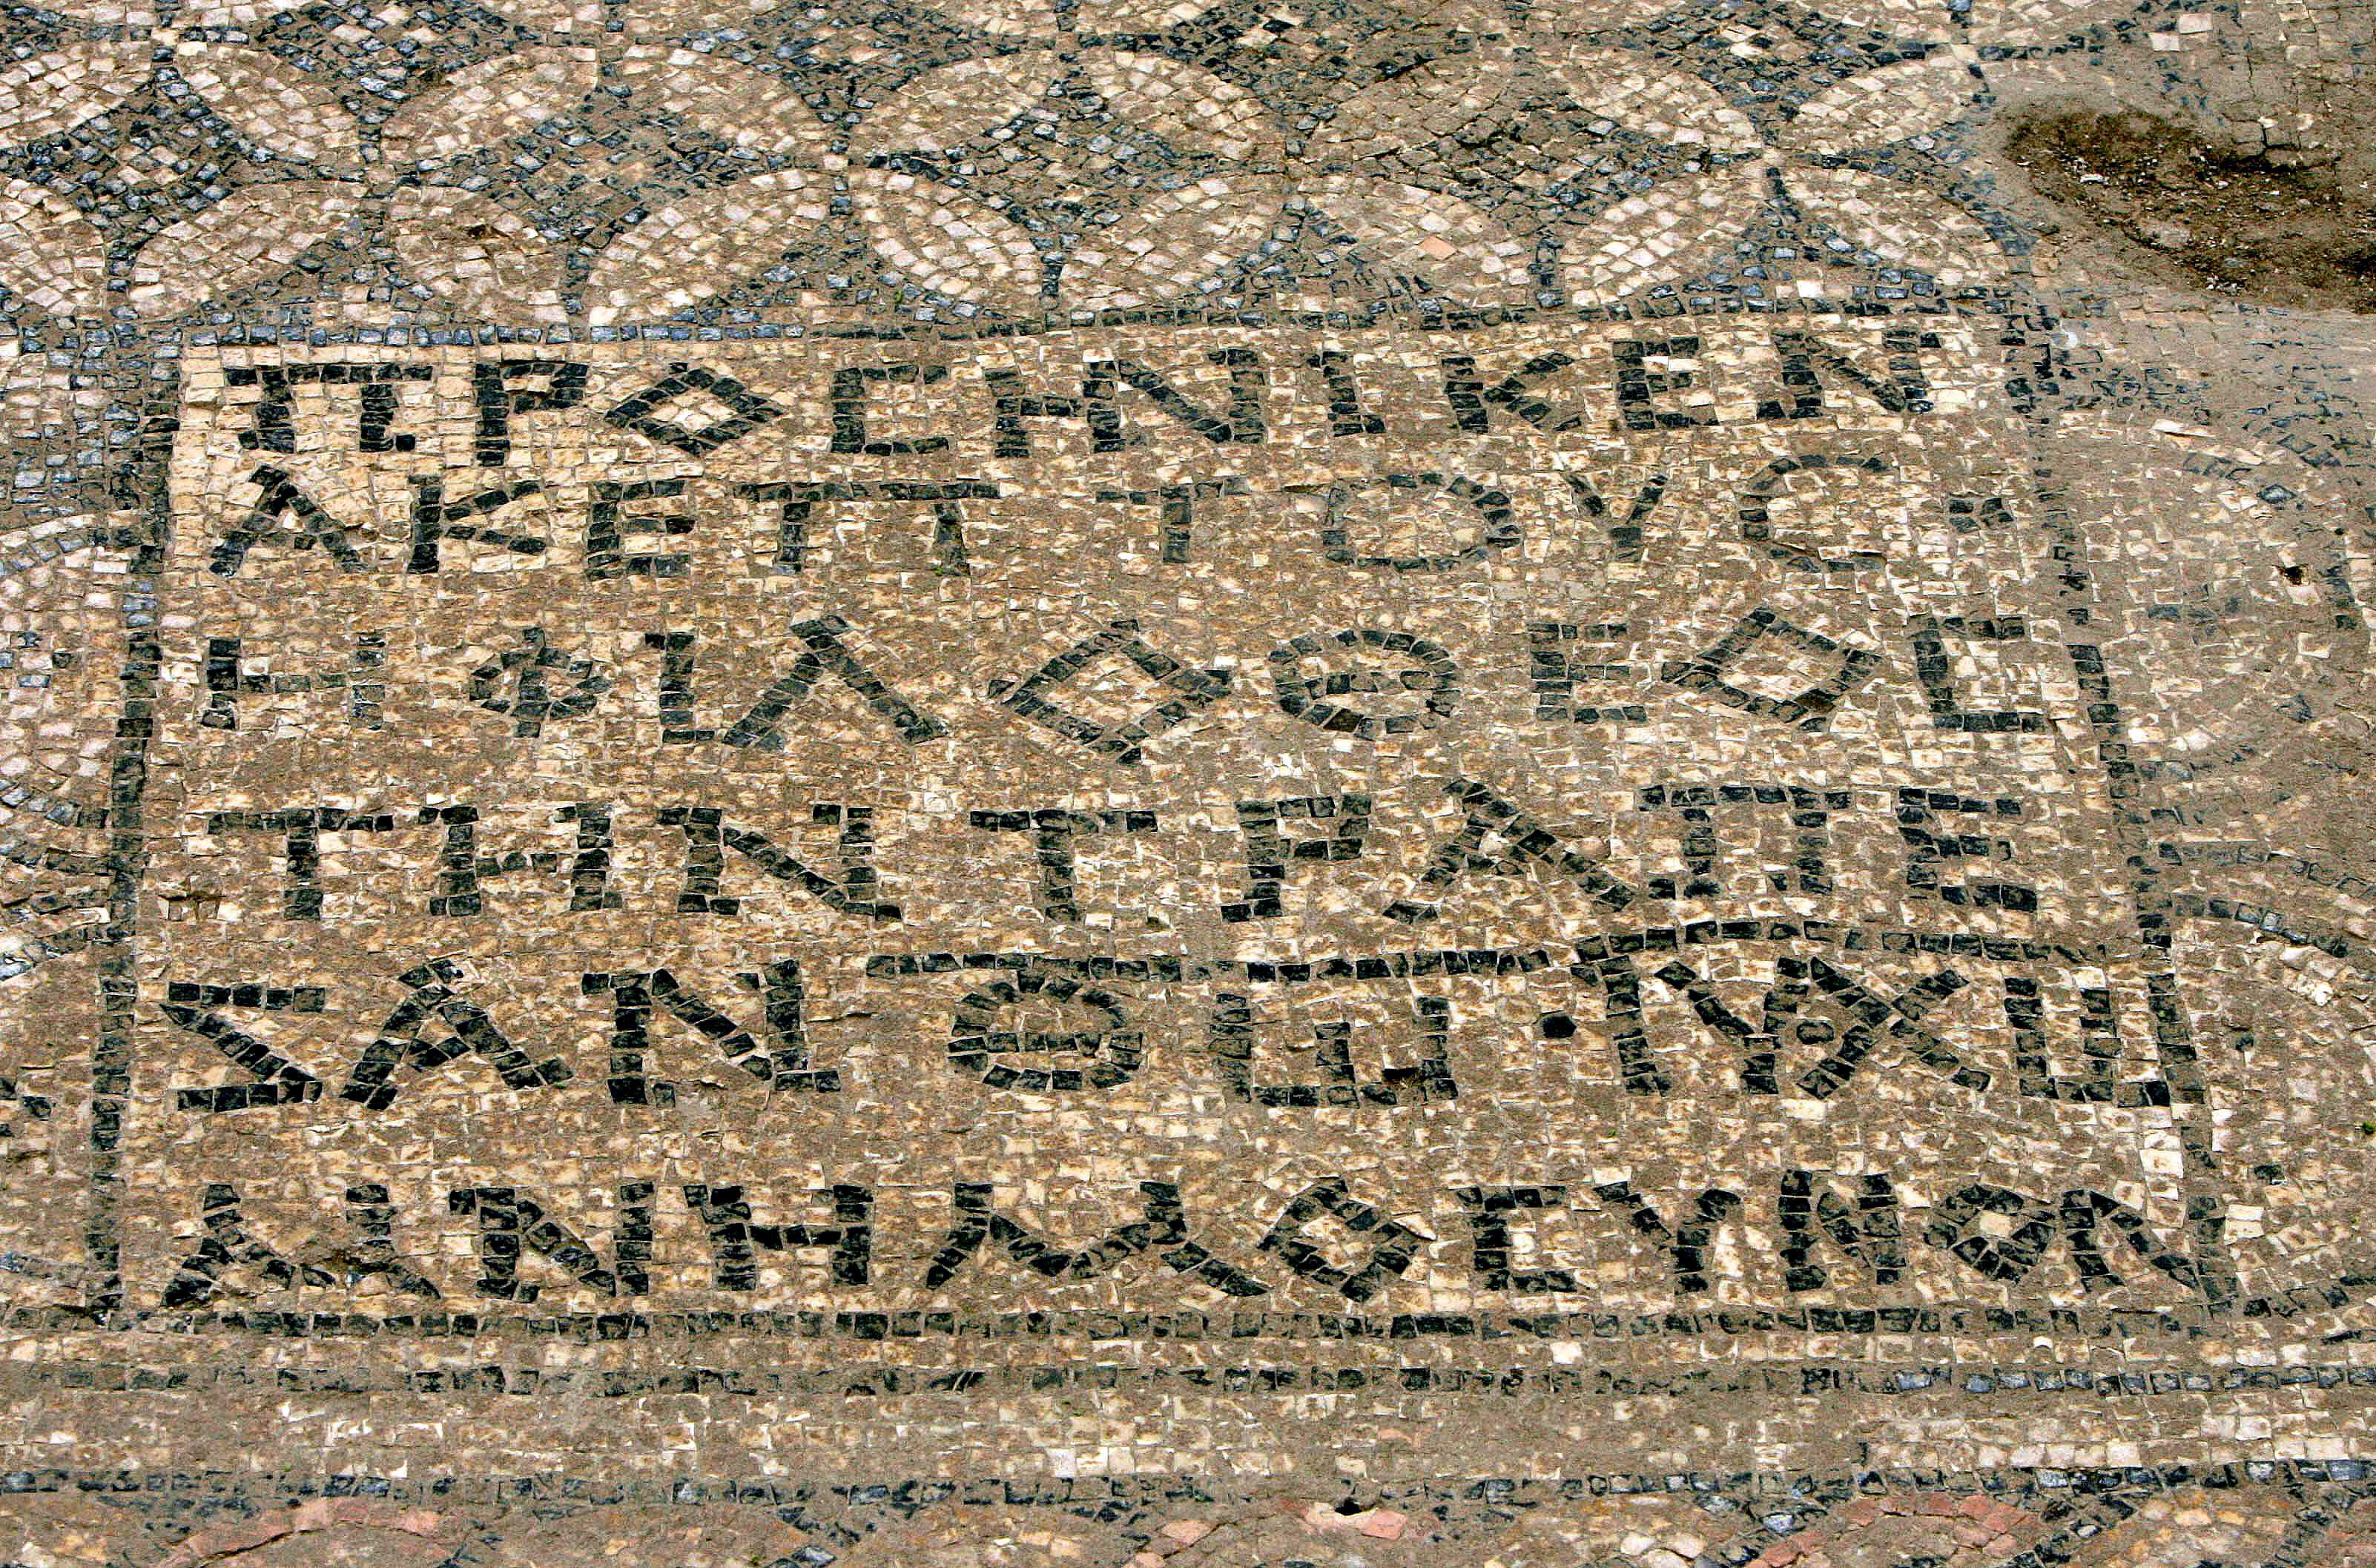 Meggido Prison mosaic mentioning Jesus, located on the floor of the ancient prayer hall (Photo: Reuters)